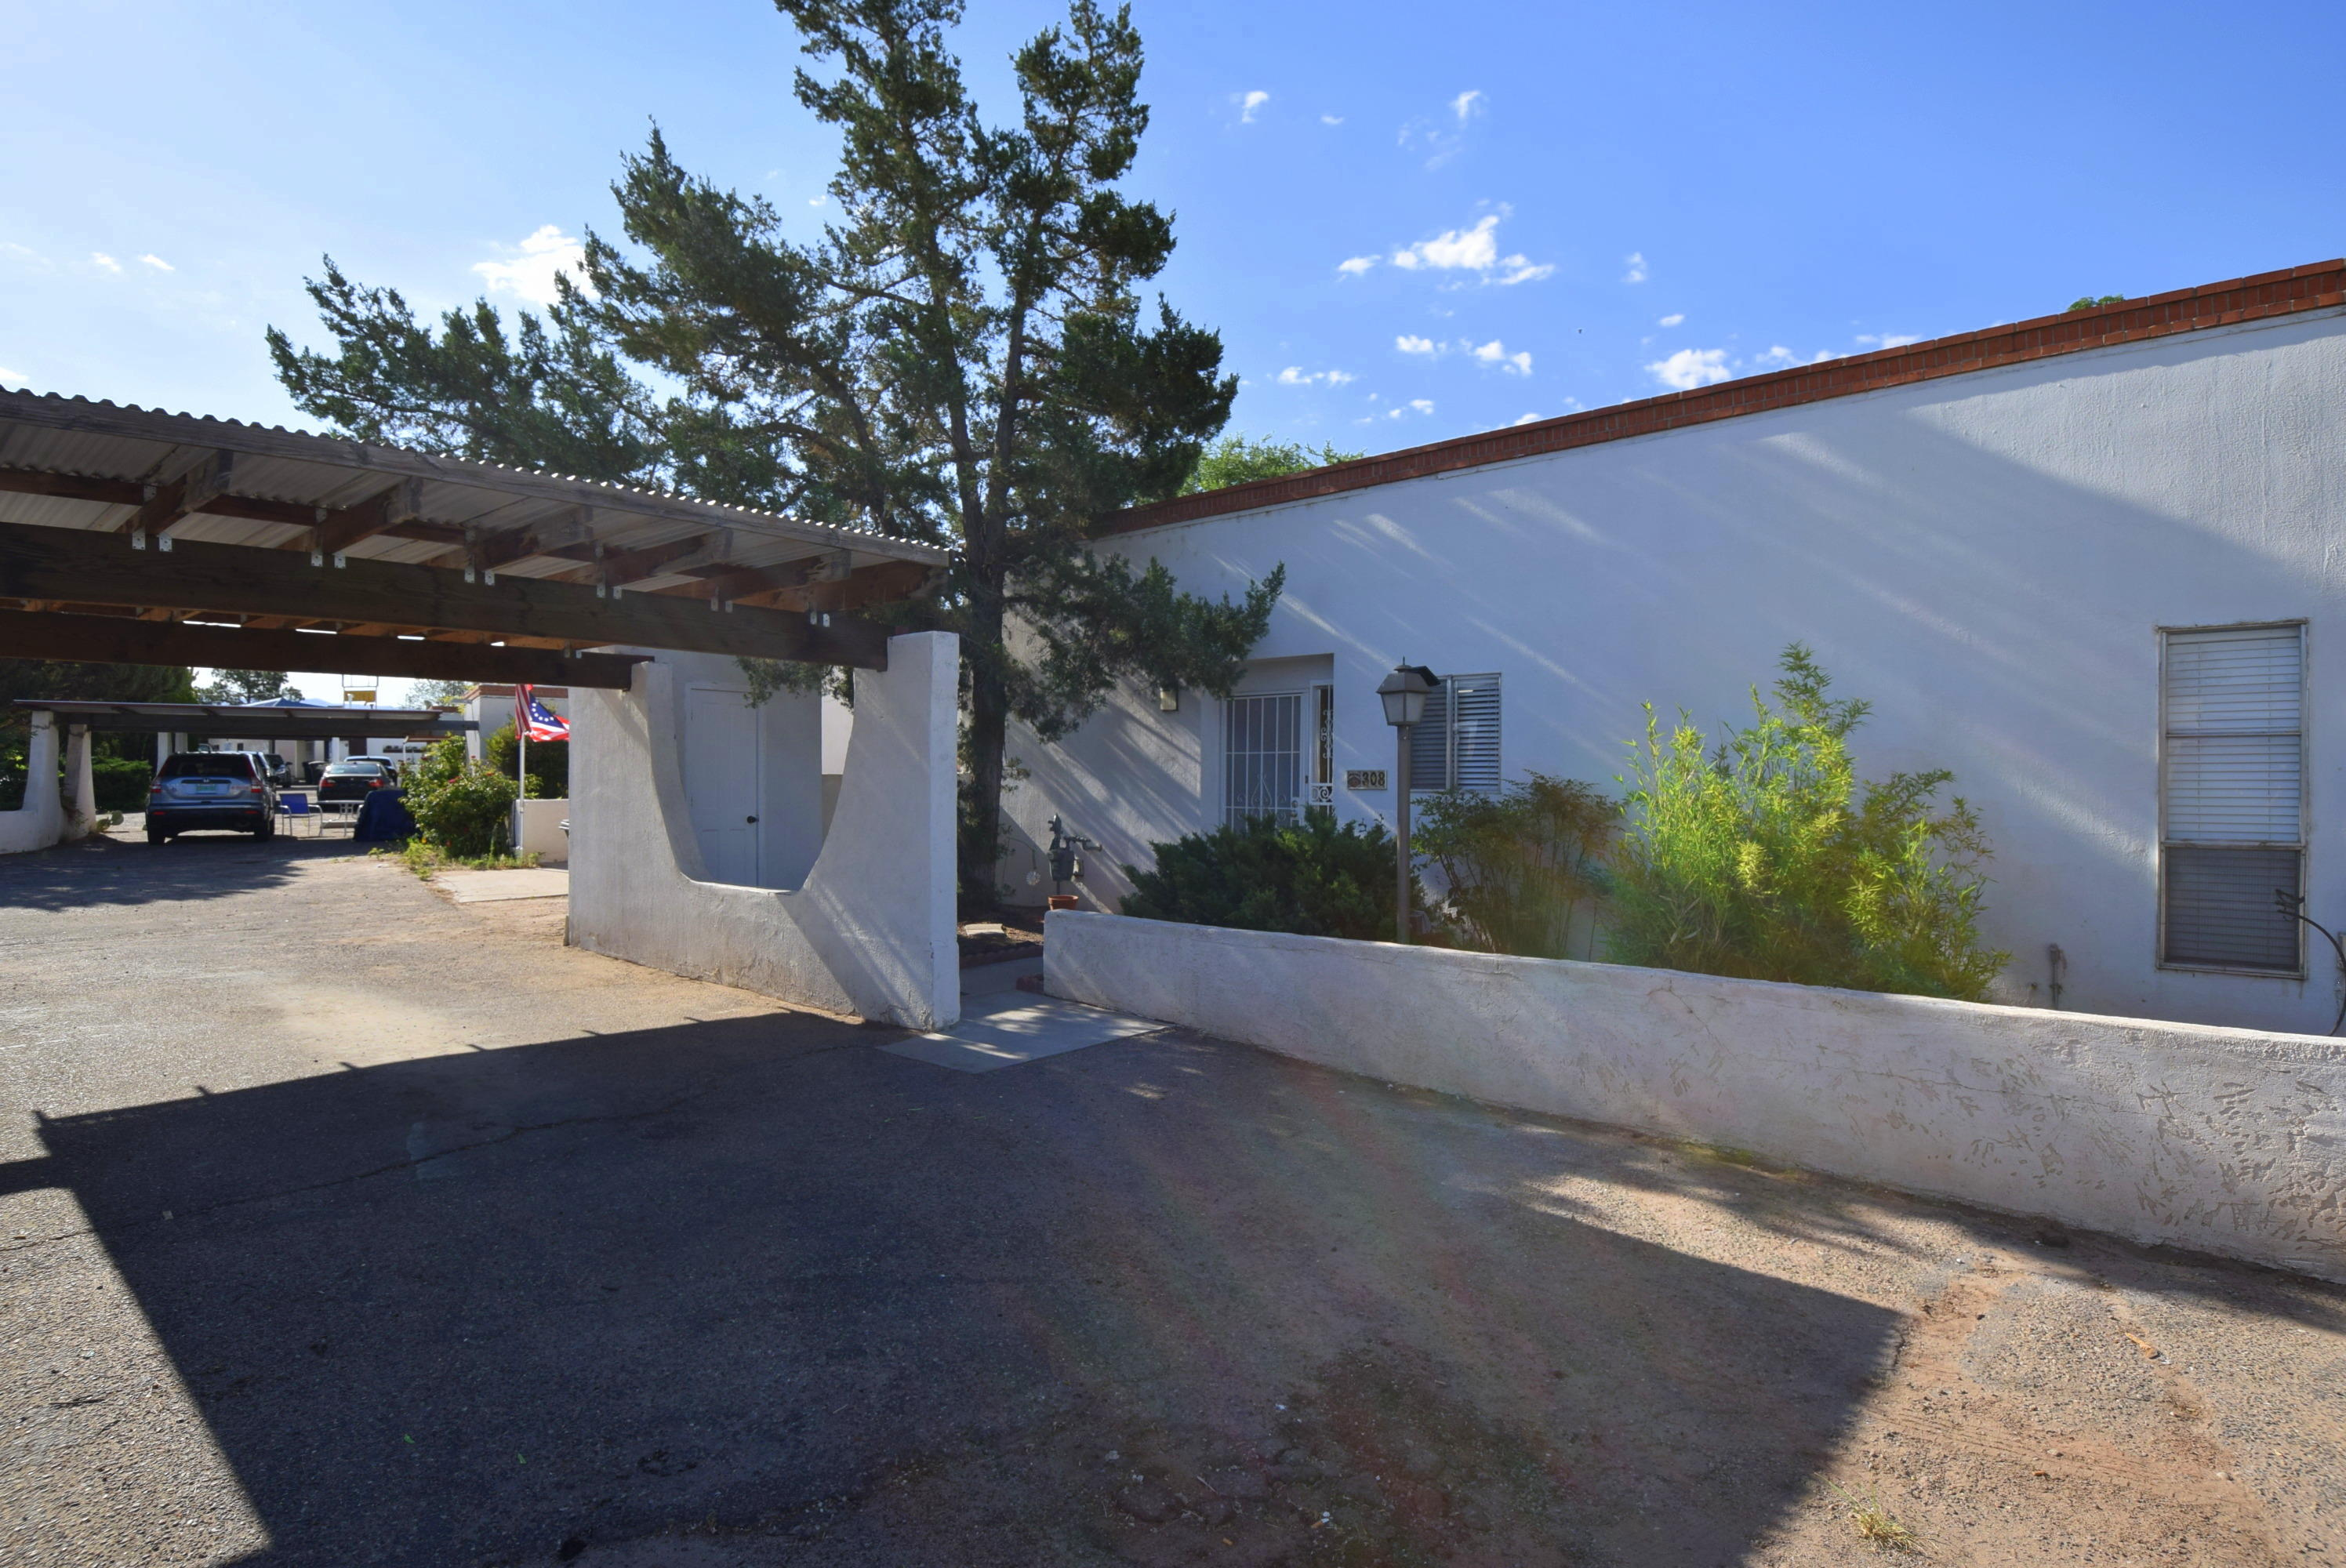 308 HORIZON VISTA Boulevard Property Photo - Belen, NM real estate listing